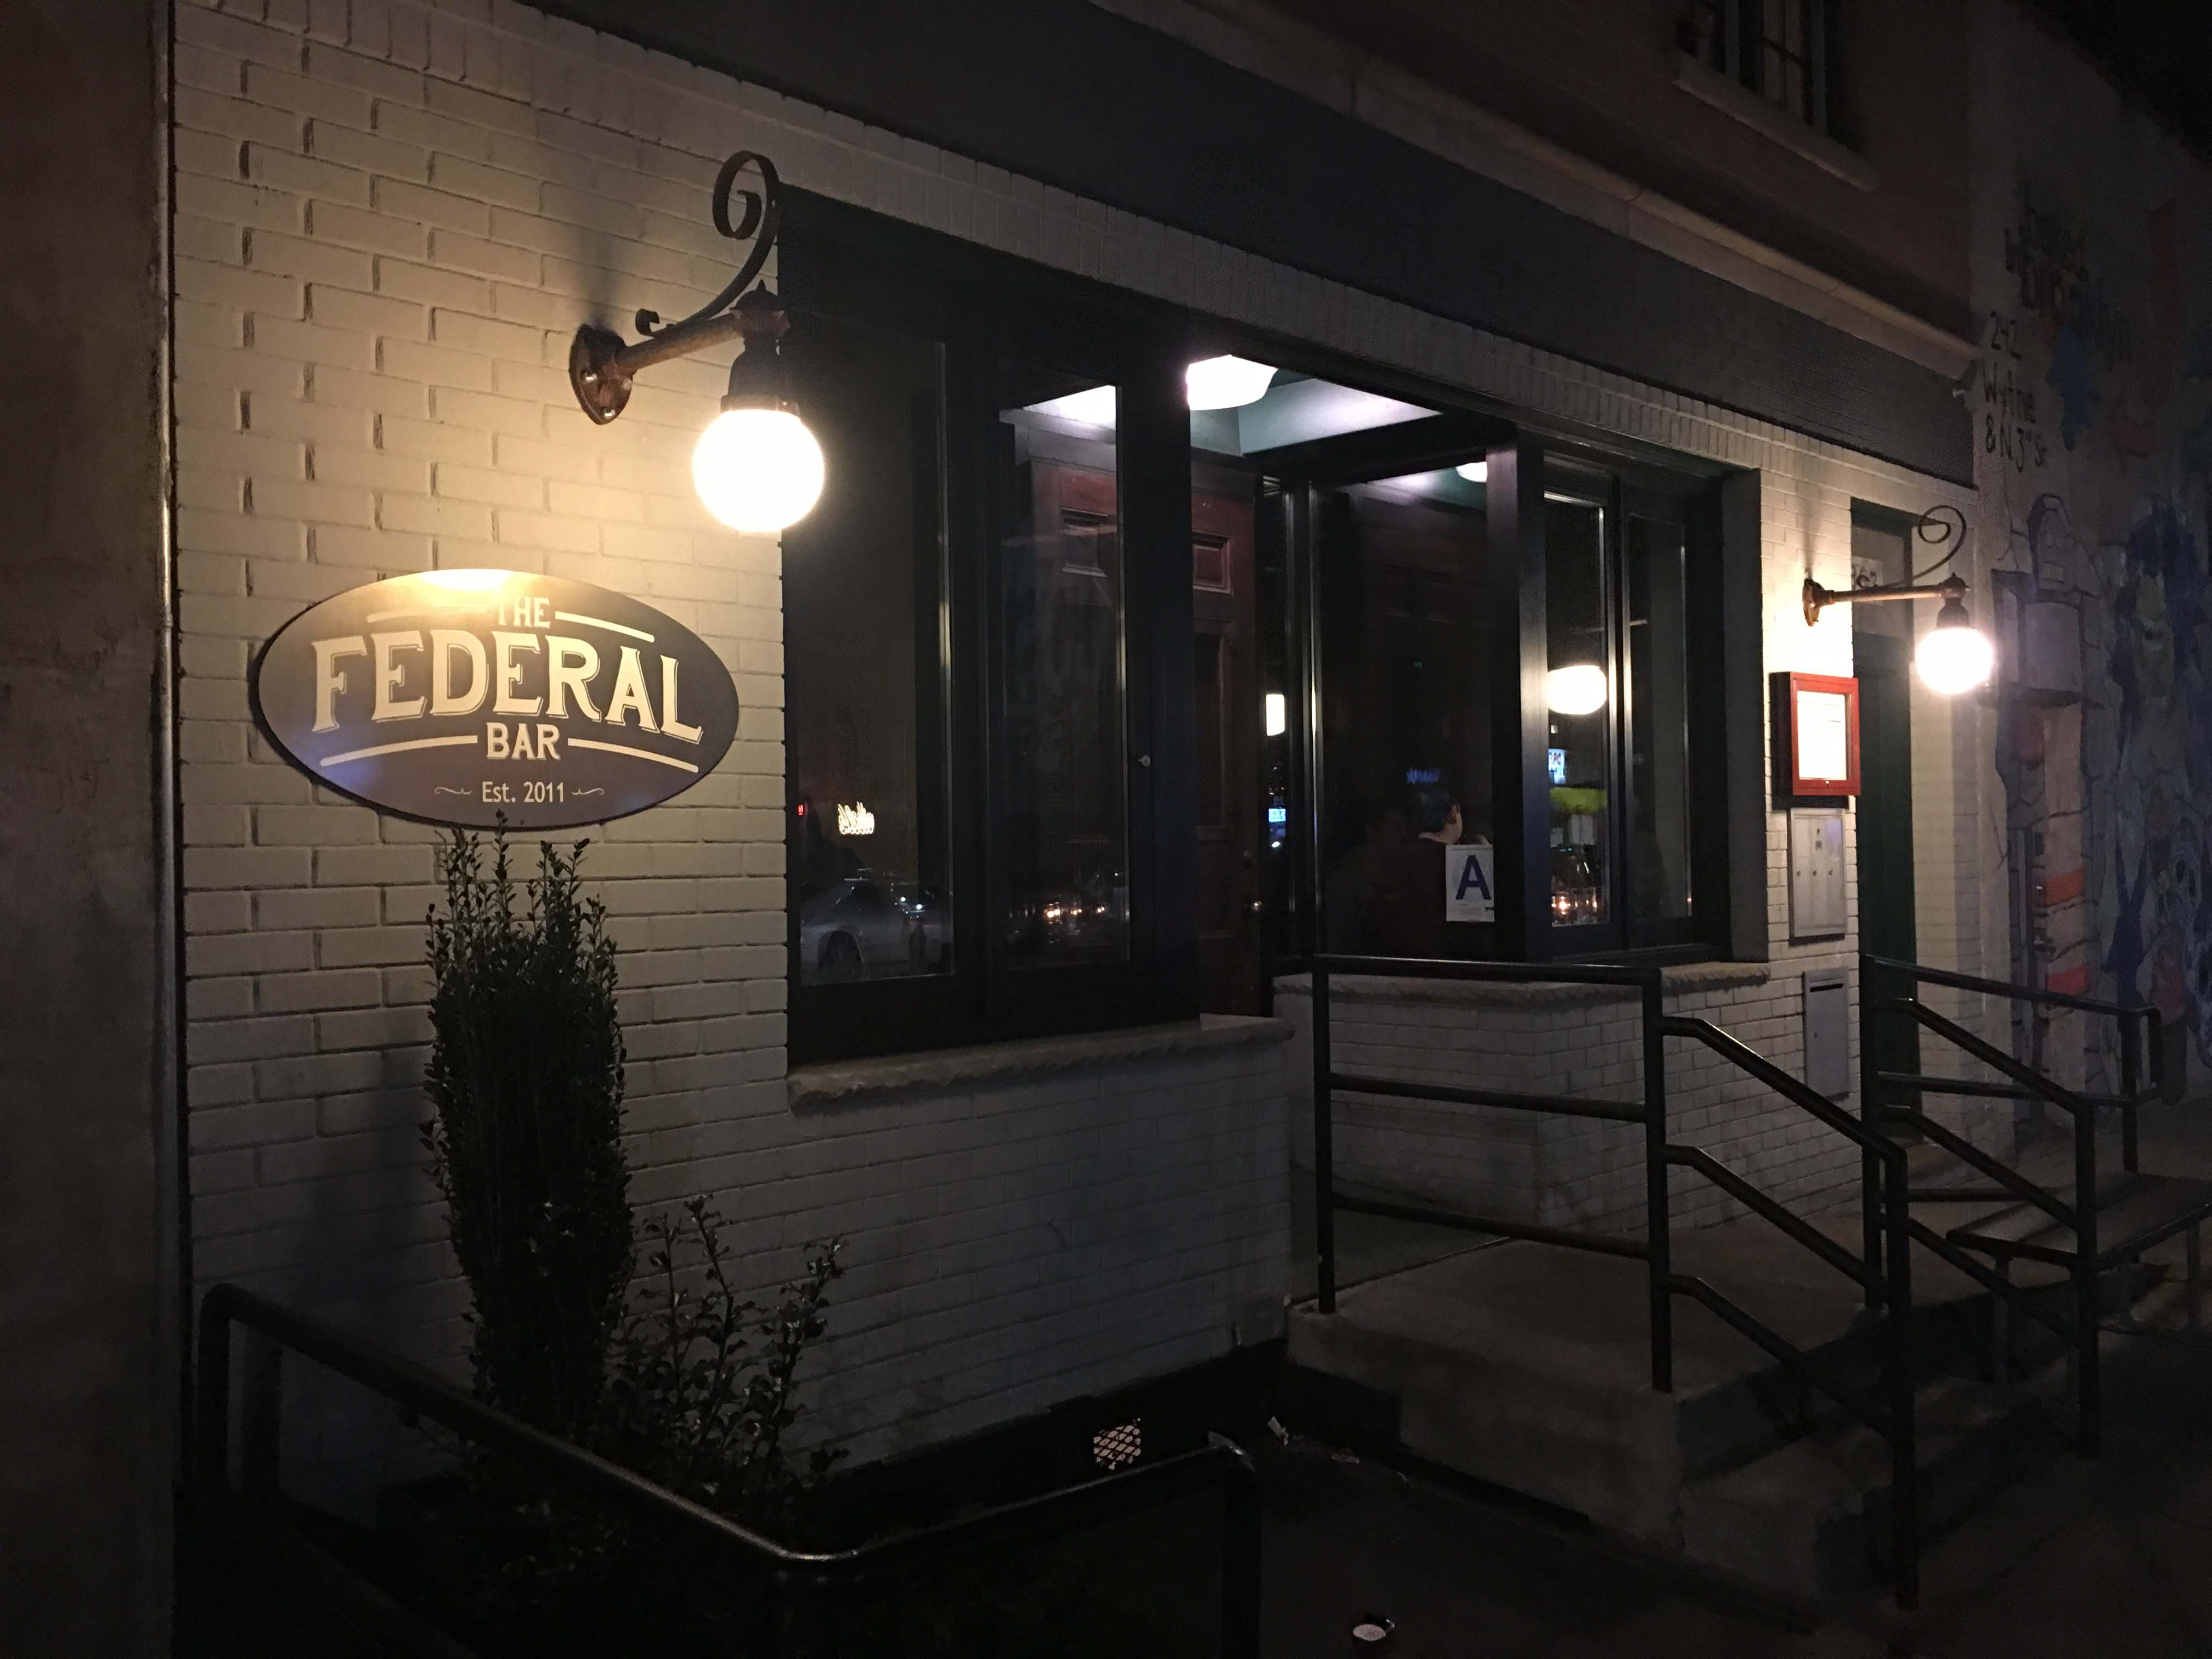 Federal storefront